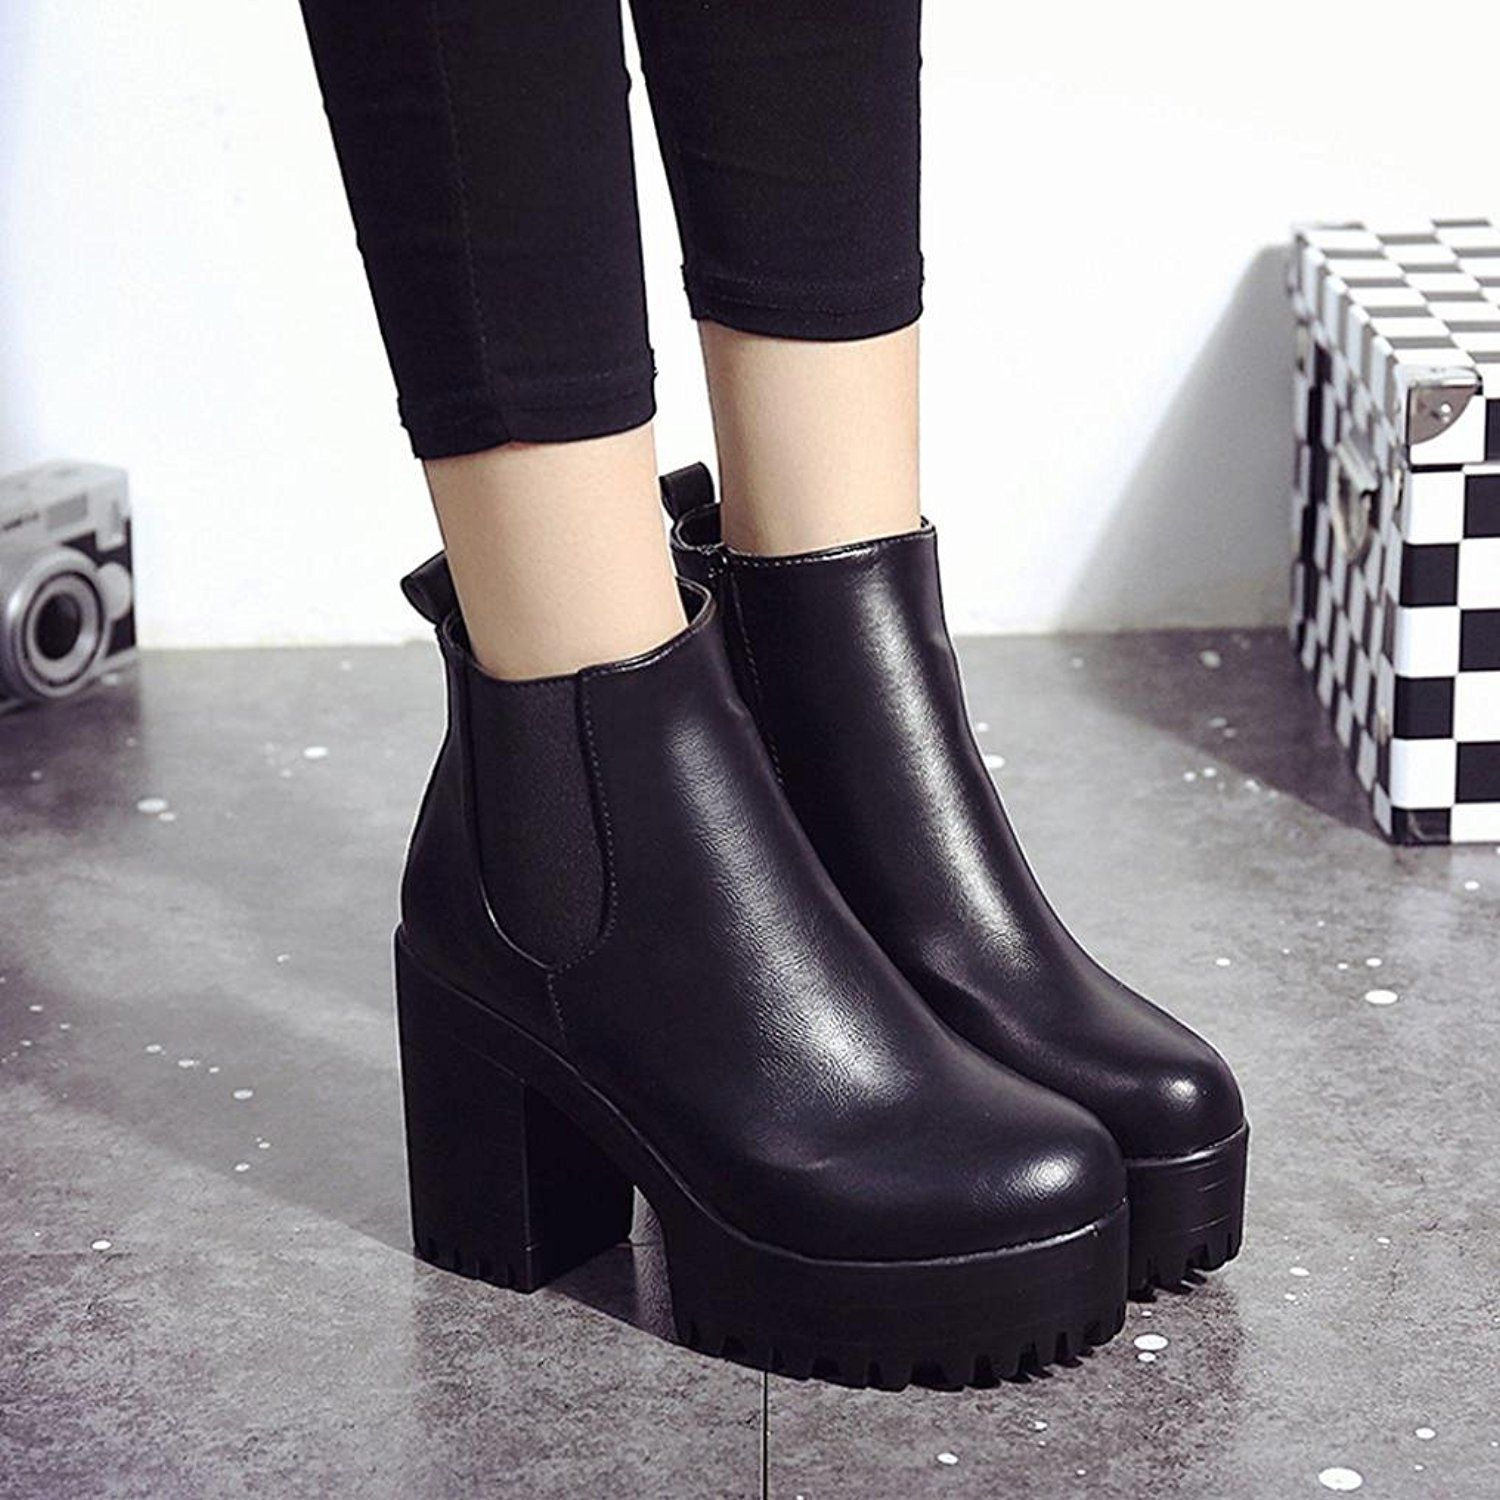 Women's Chic Chunky Heel Zip Ankle High Dress Boots